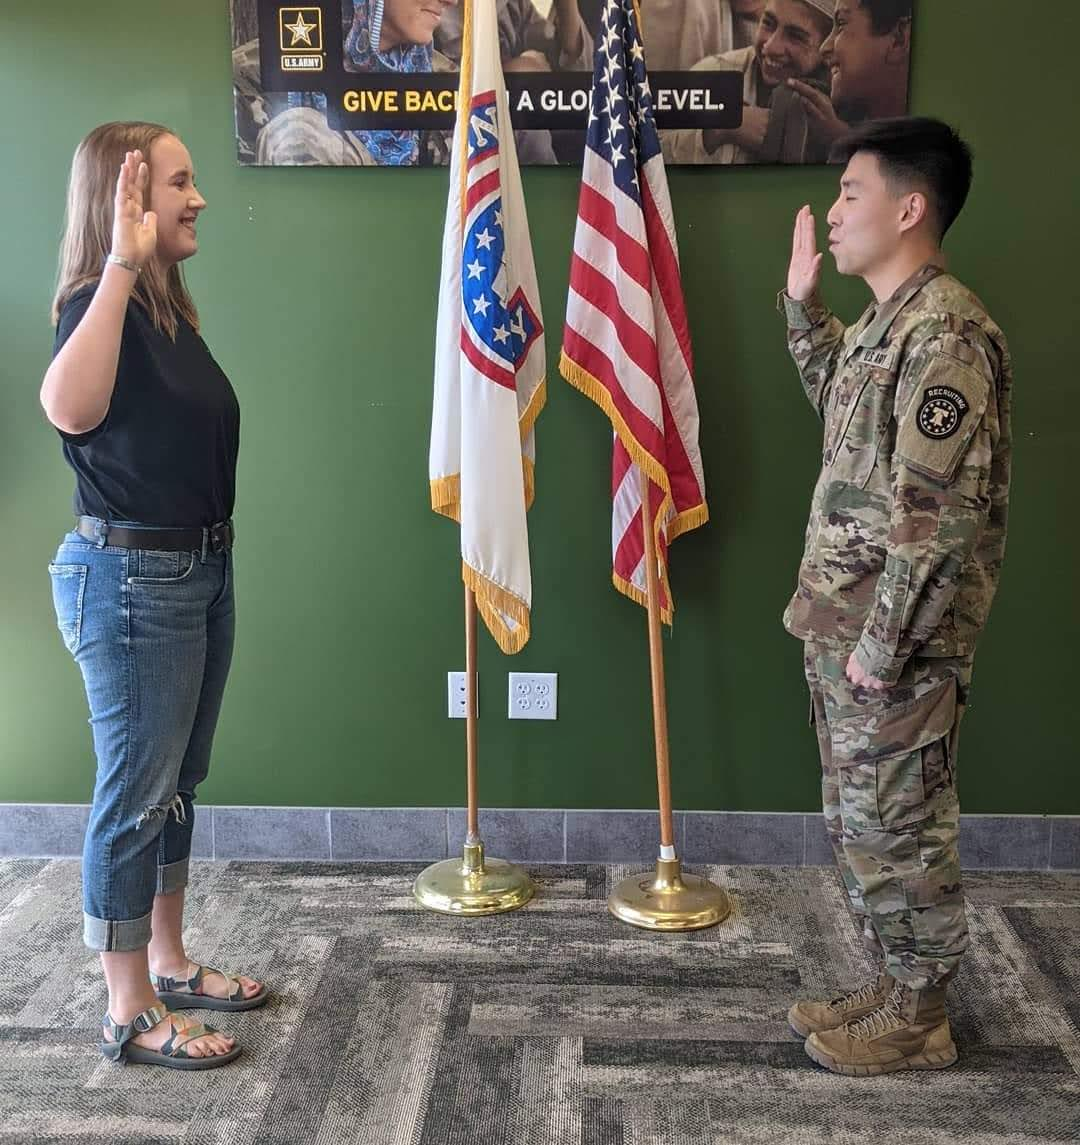 Reynolds '21 was Sworn into the U.S. Army on May 7